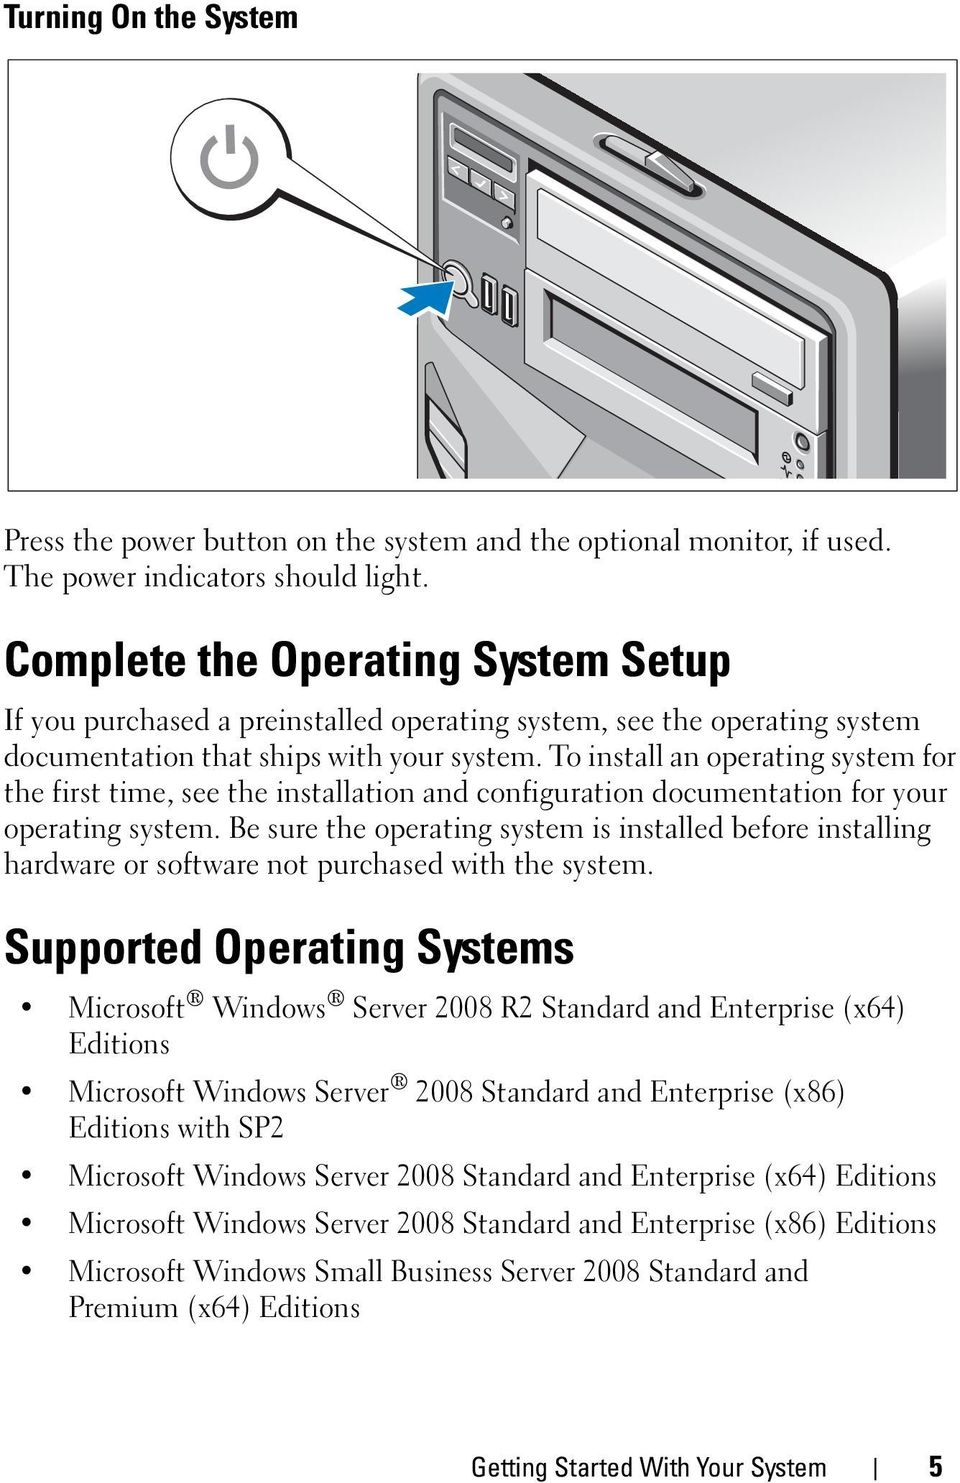 To install an operating system for the first time, see the installation and configuration documentation for your operating system.